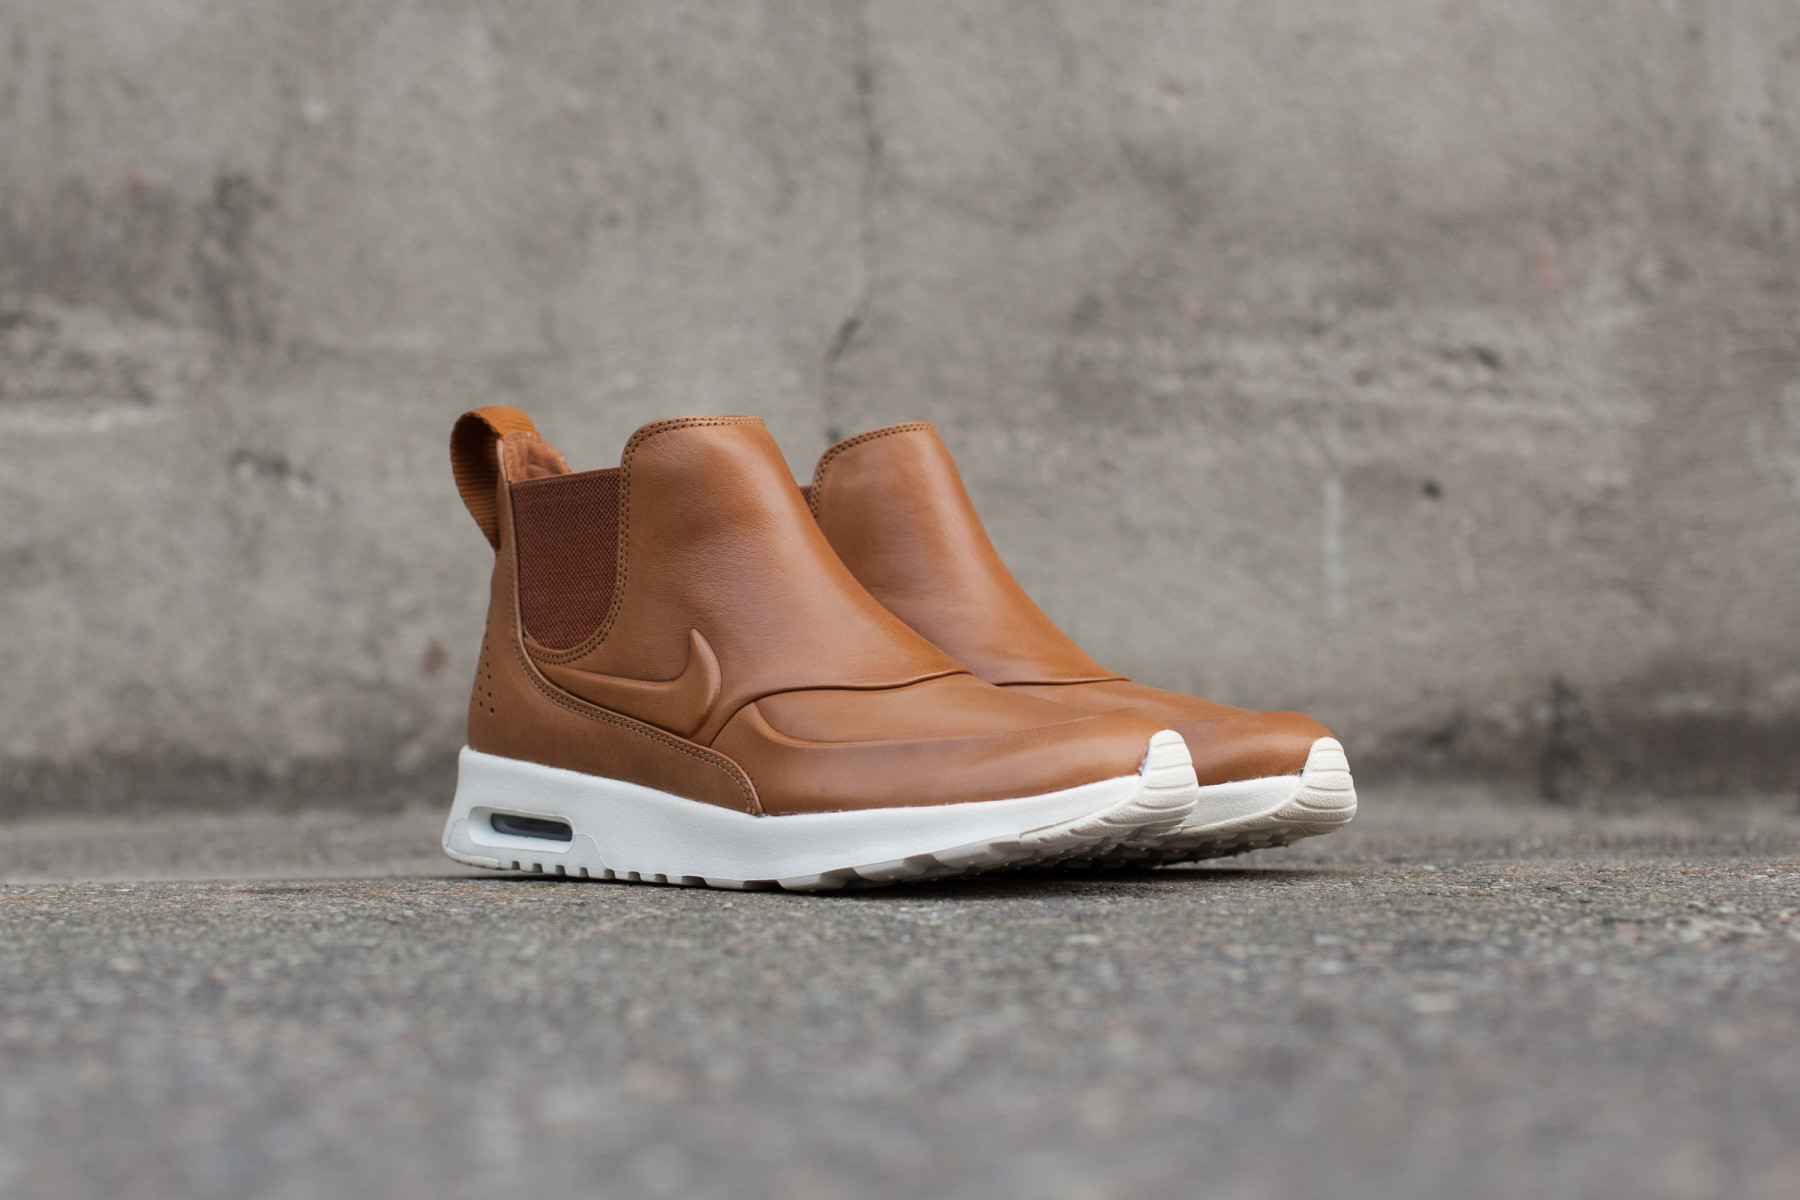 Wmns Nike Air Max Thea MID Boots Sneaker.no